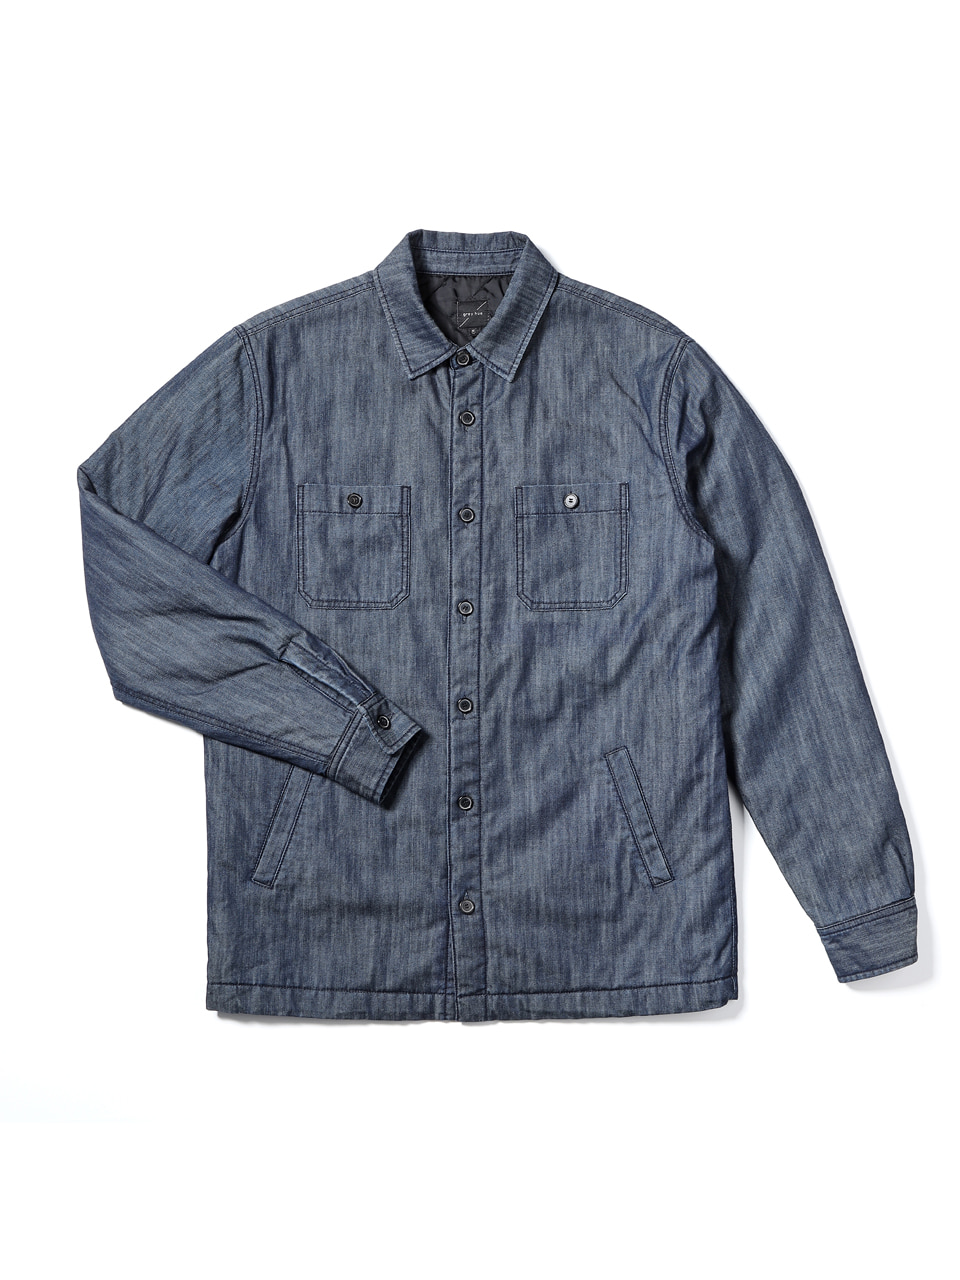 그레이휴Denim Over Shirt, Navy